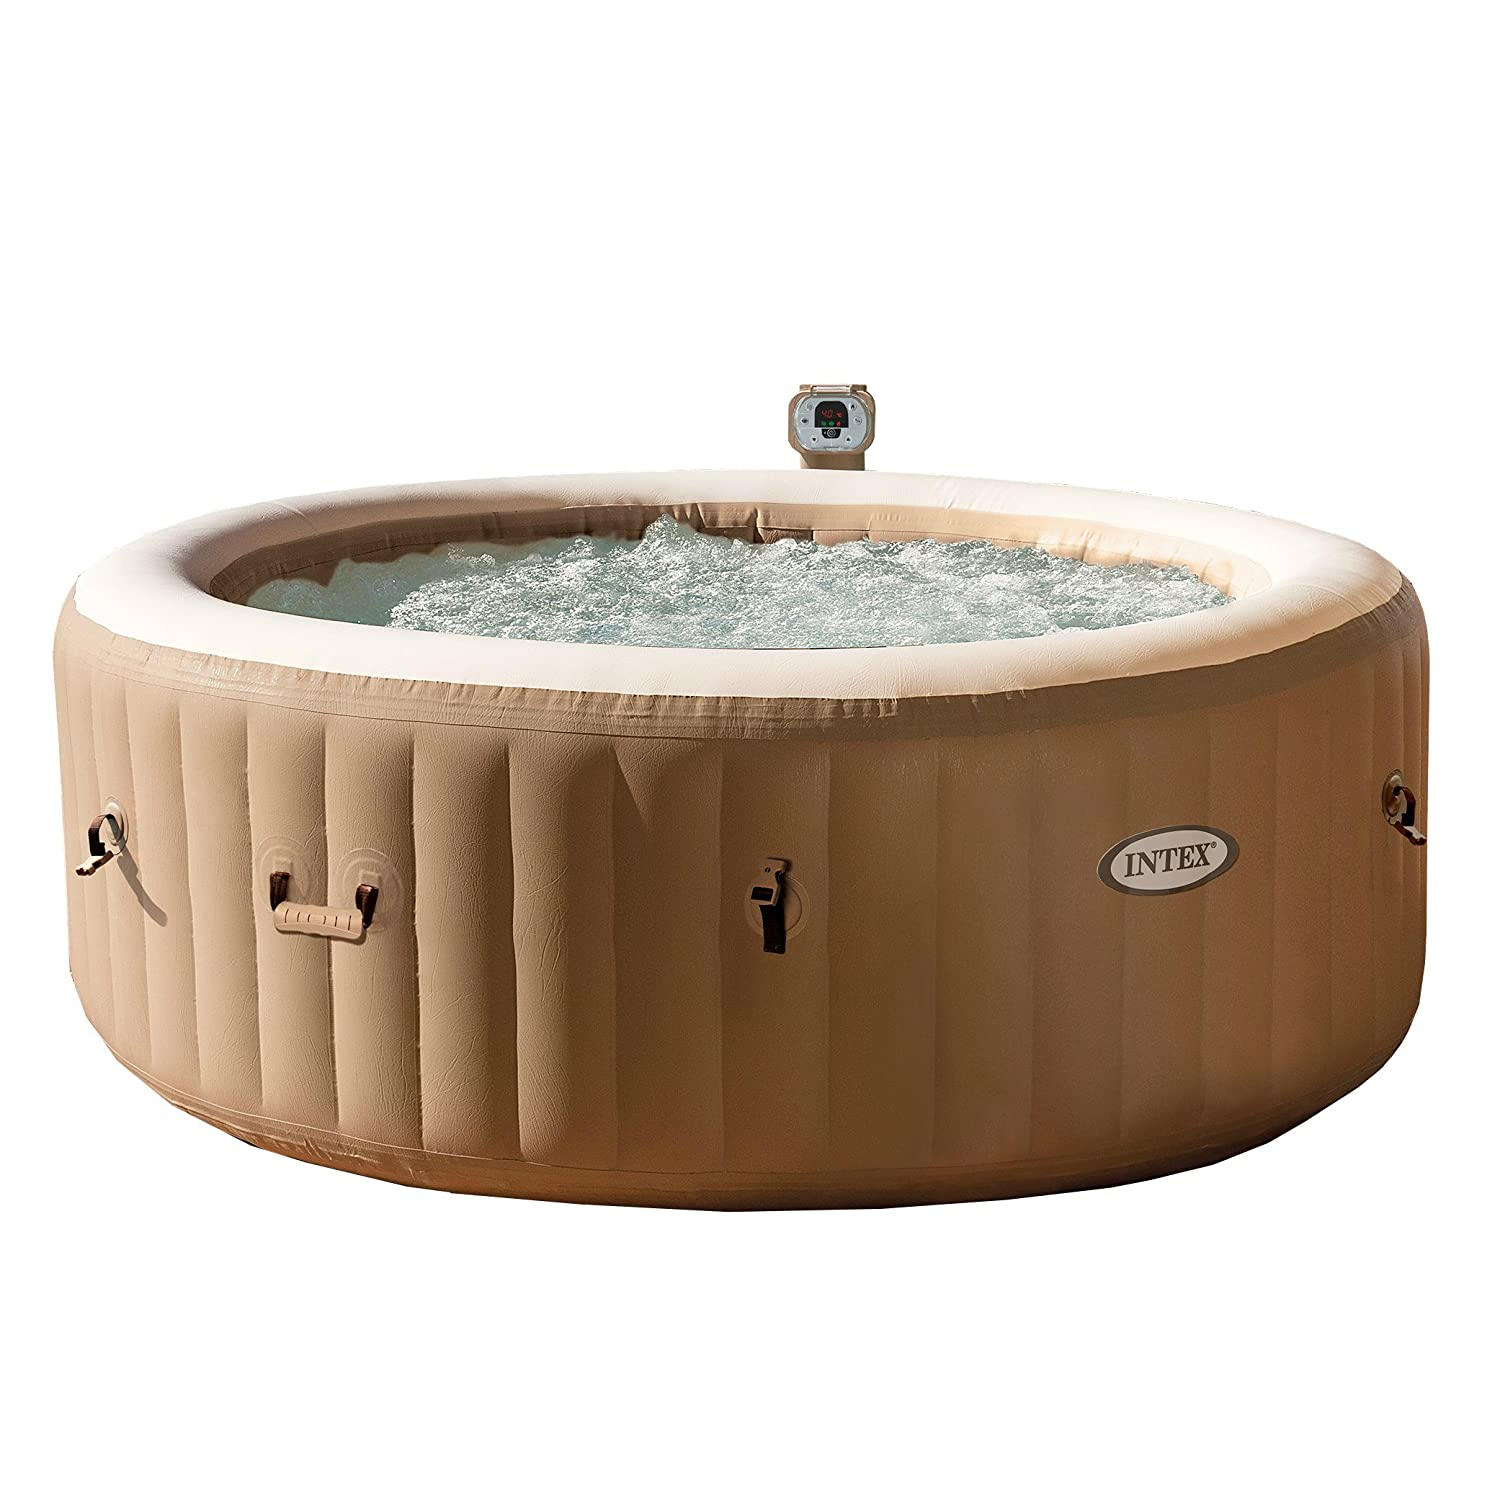 Hot Tub : Hot Tubs - Inflatable Hot Tub, Portable Hot Tubs, Spa ...